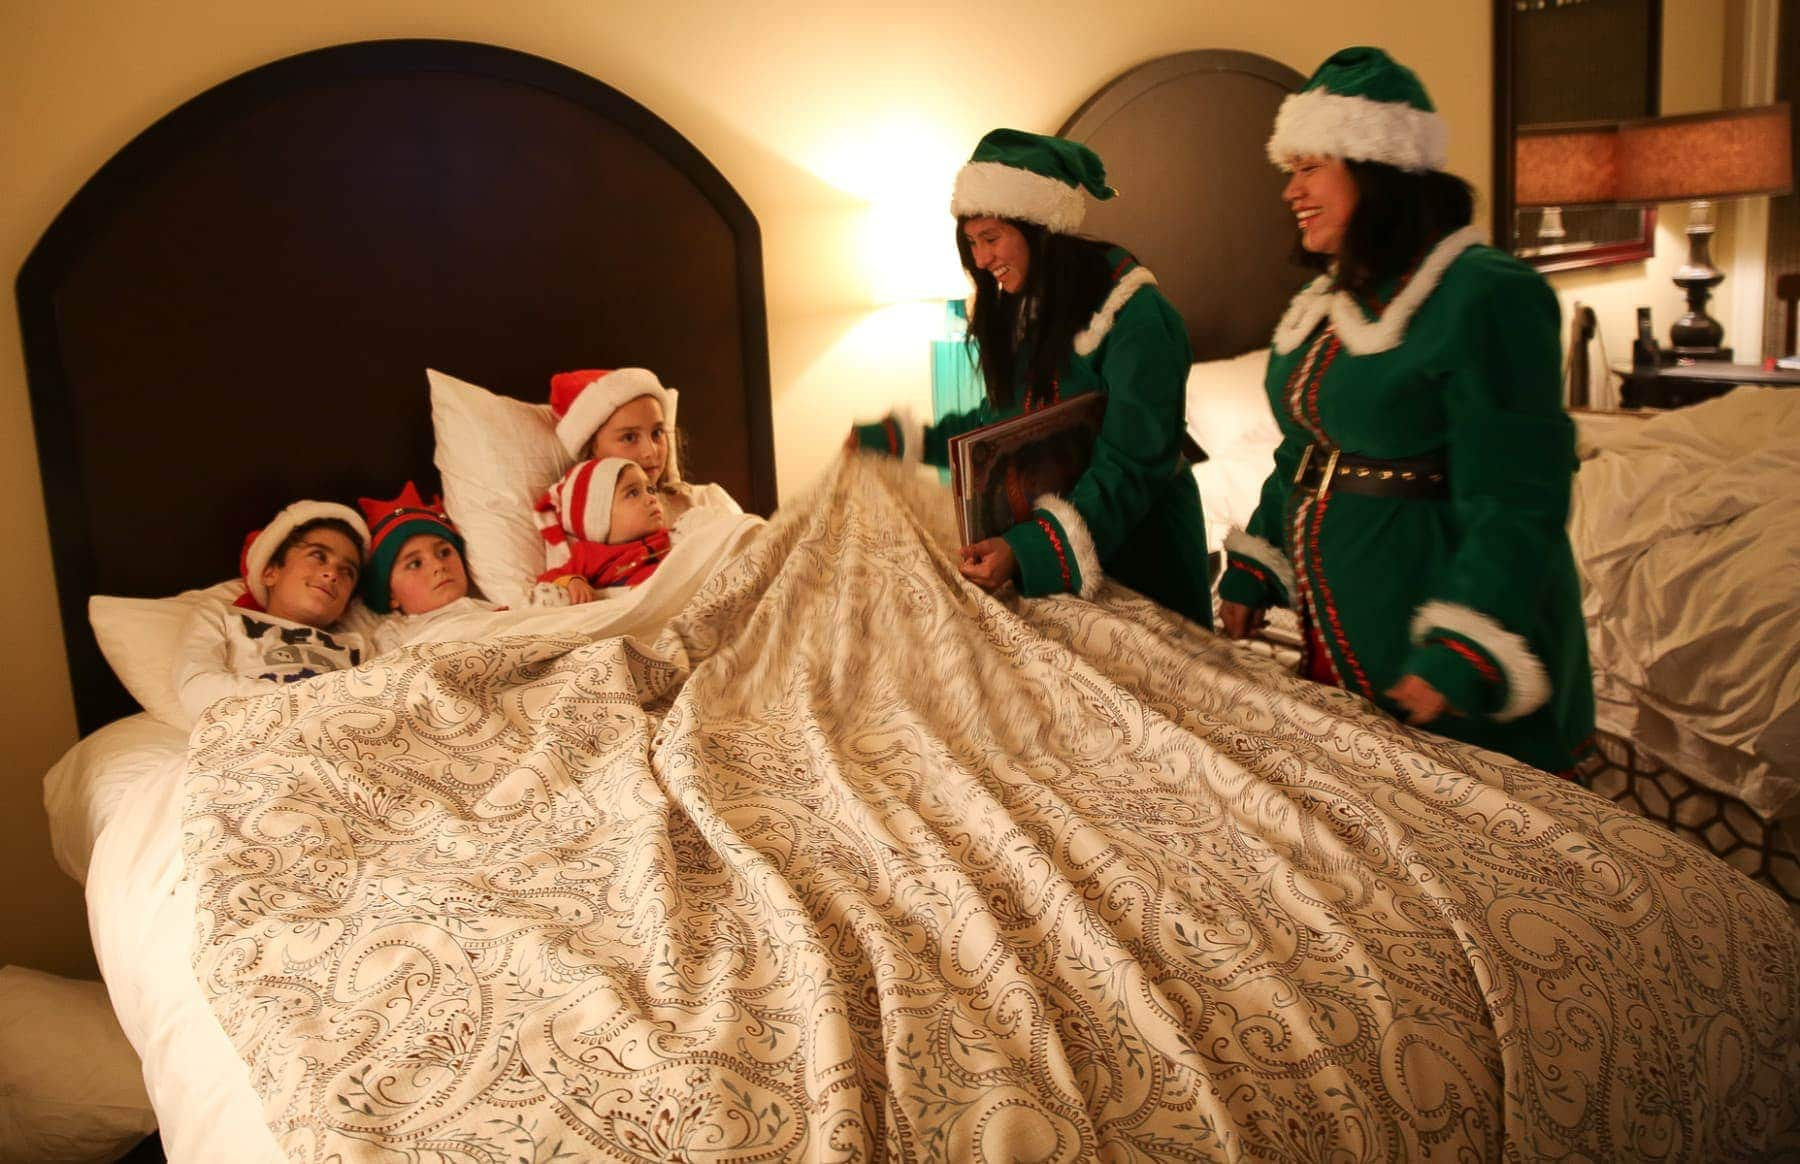 kids in bed at christmas